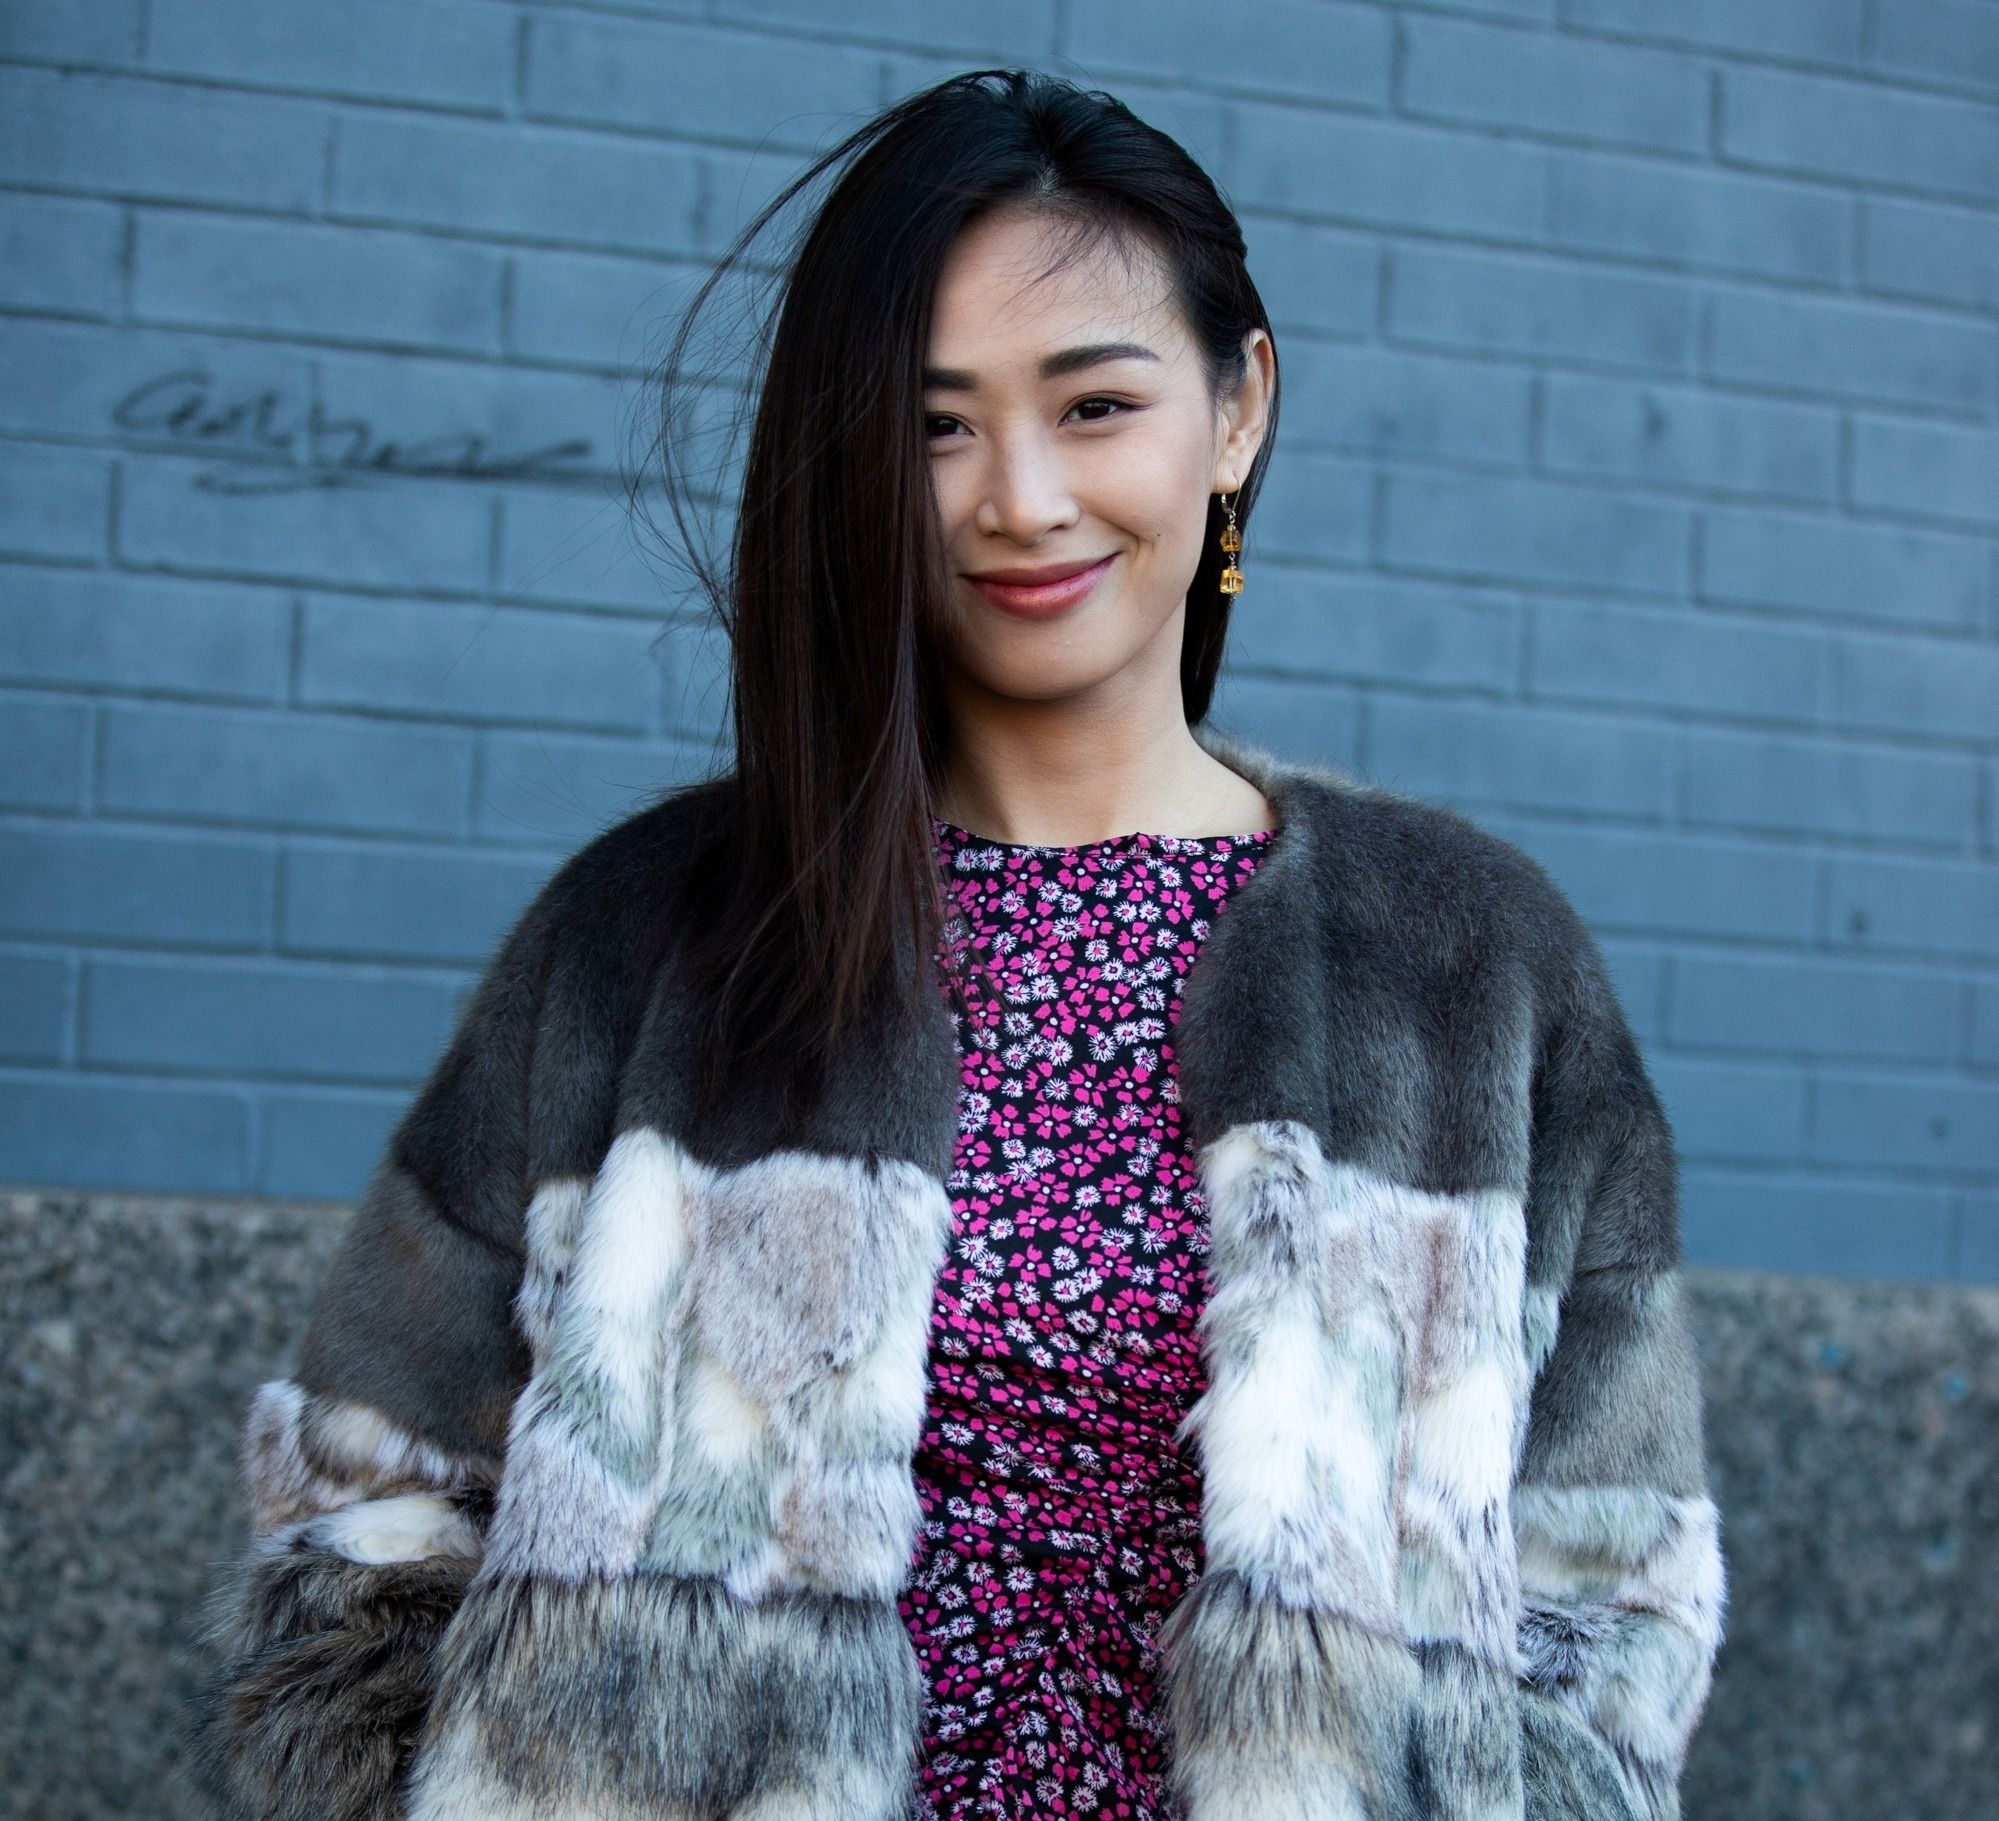 Street style hair inspiration: Asian woman with long straight black hair wearing a coat outdoors